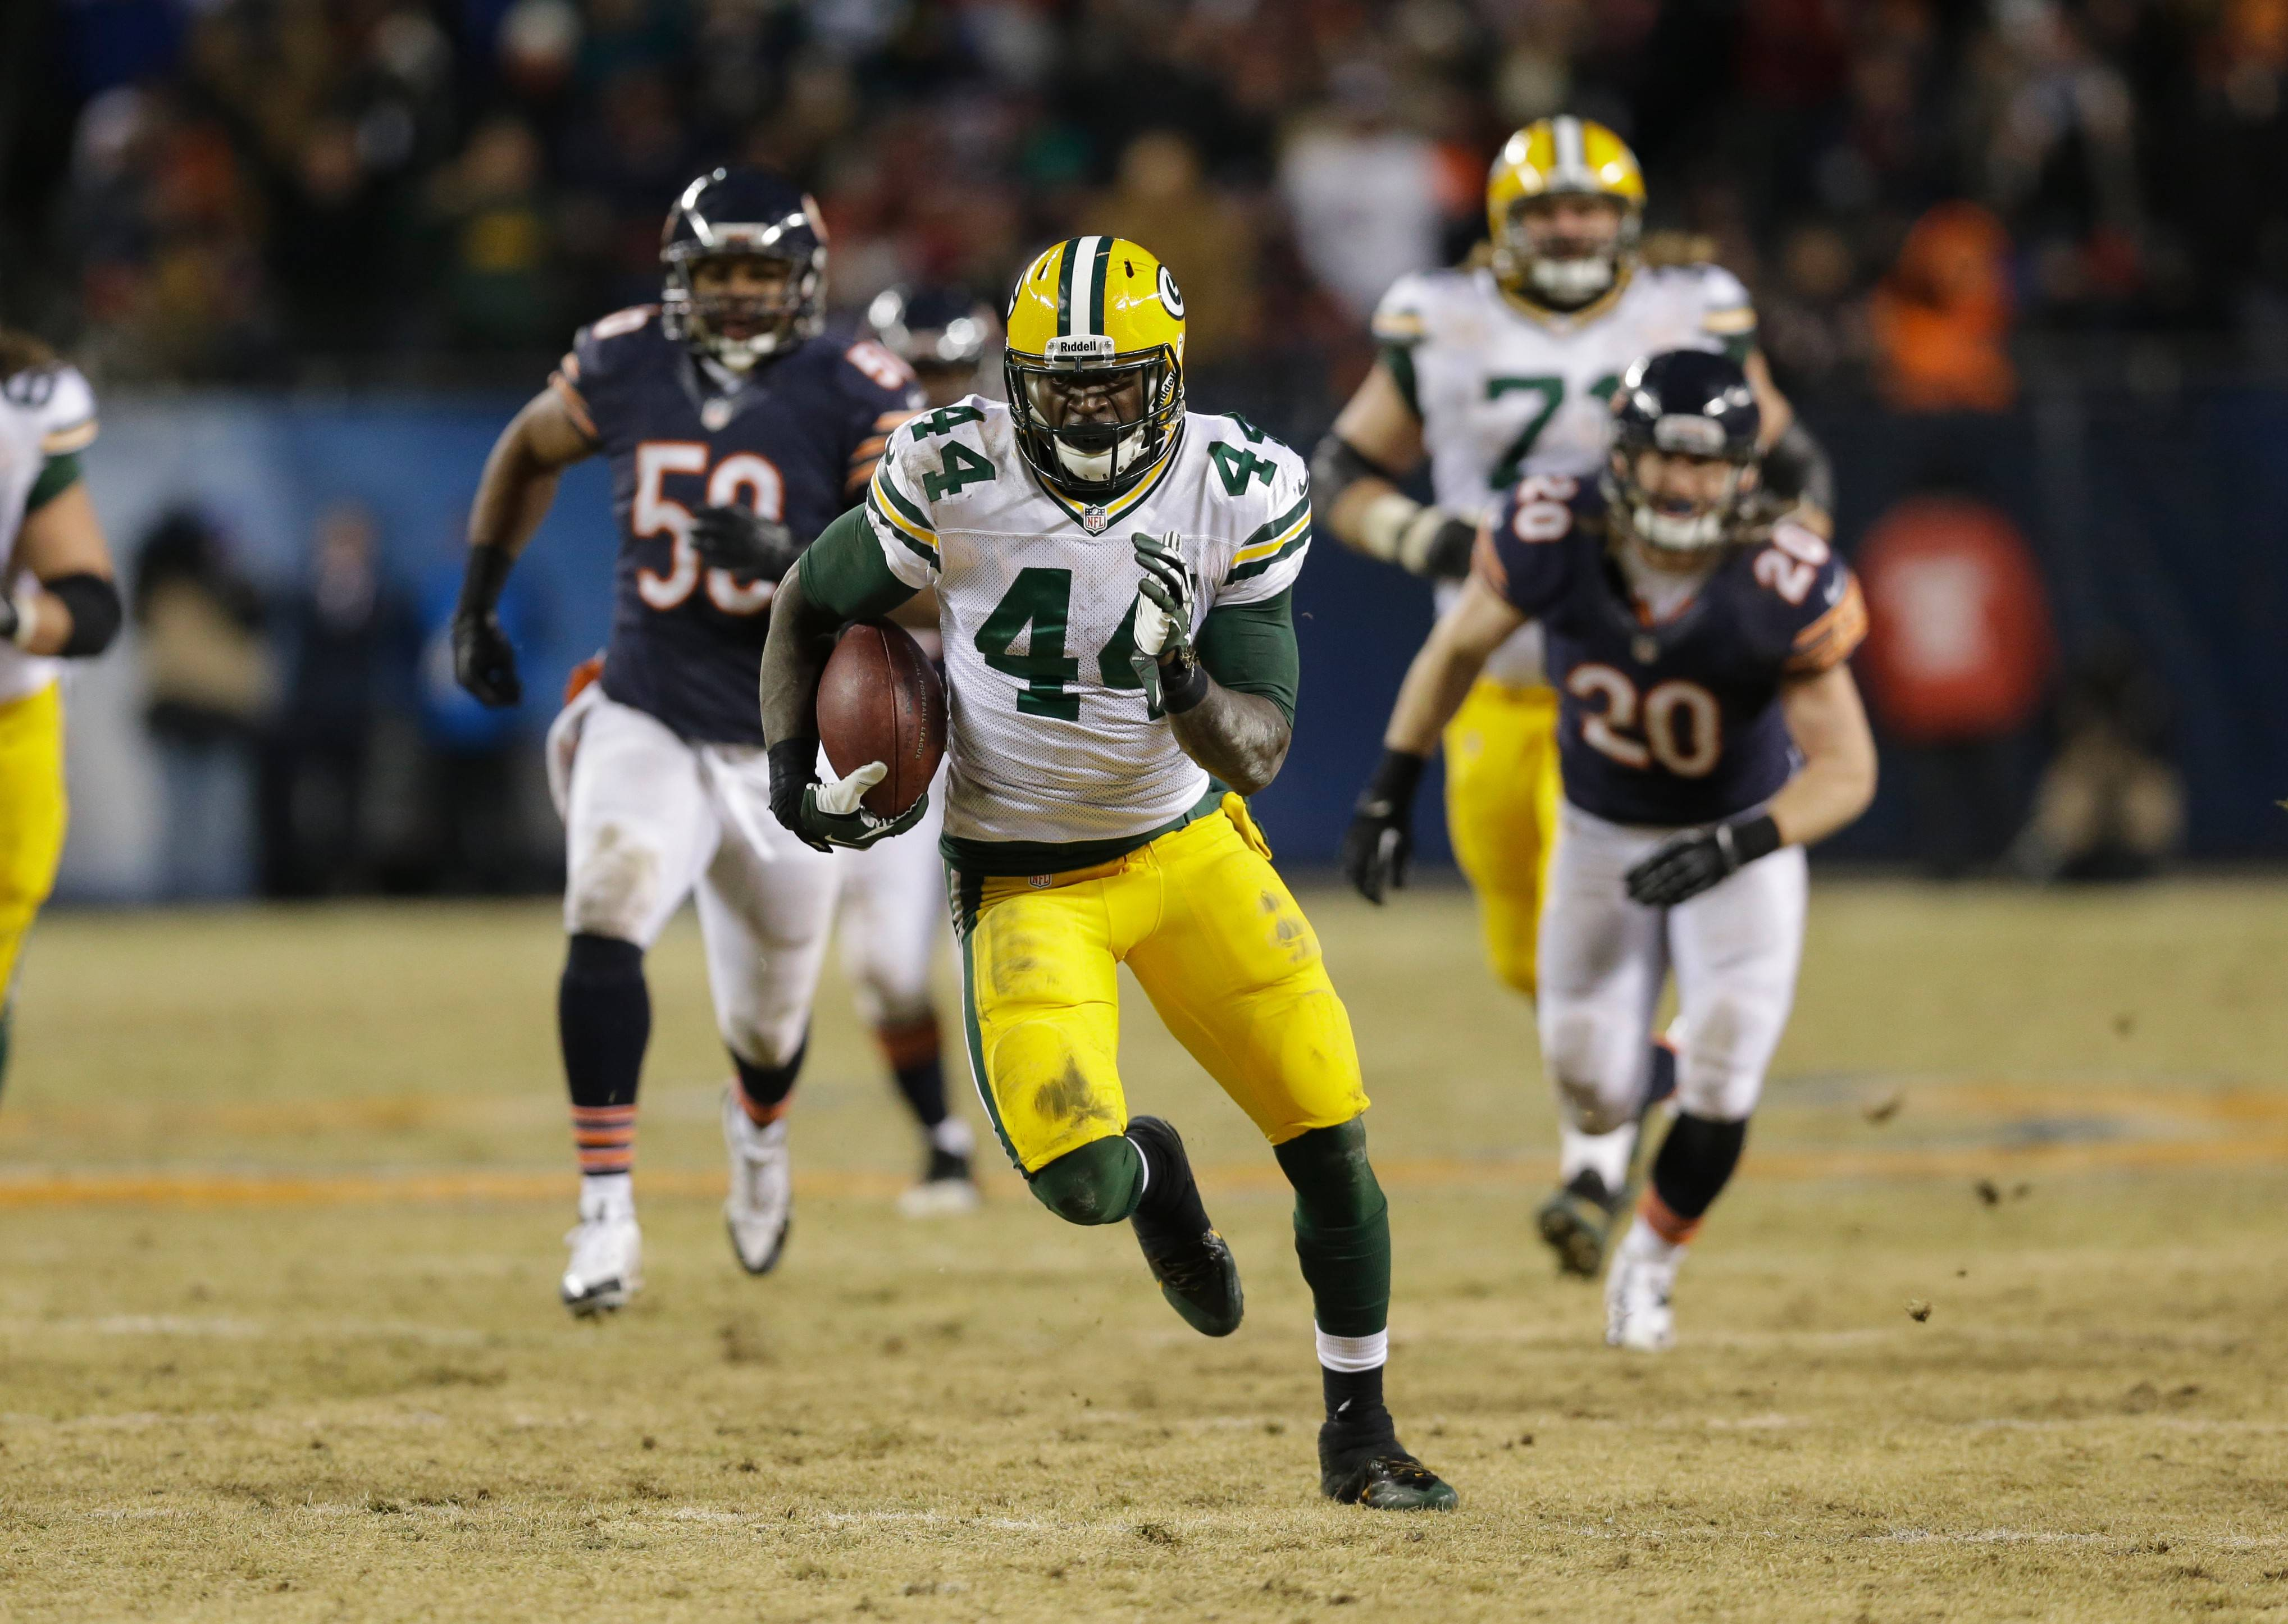 Green Bay Packers running back James Starks (44) runs against Chicago Bears defense during the second half of an NFL football game, Sunday, Dec. 29, 2013, in Chicago. (AP Photo/Nam Y. Huh)